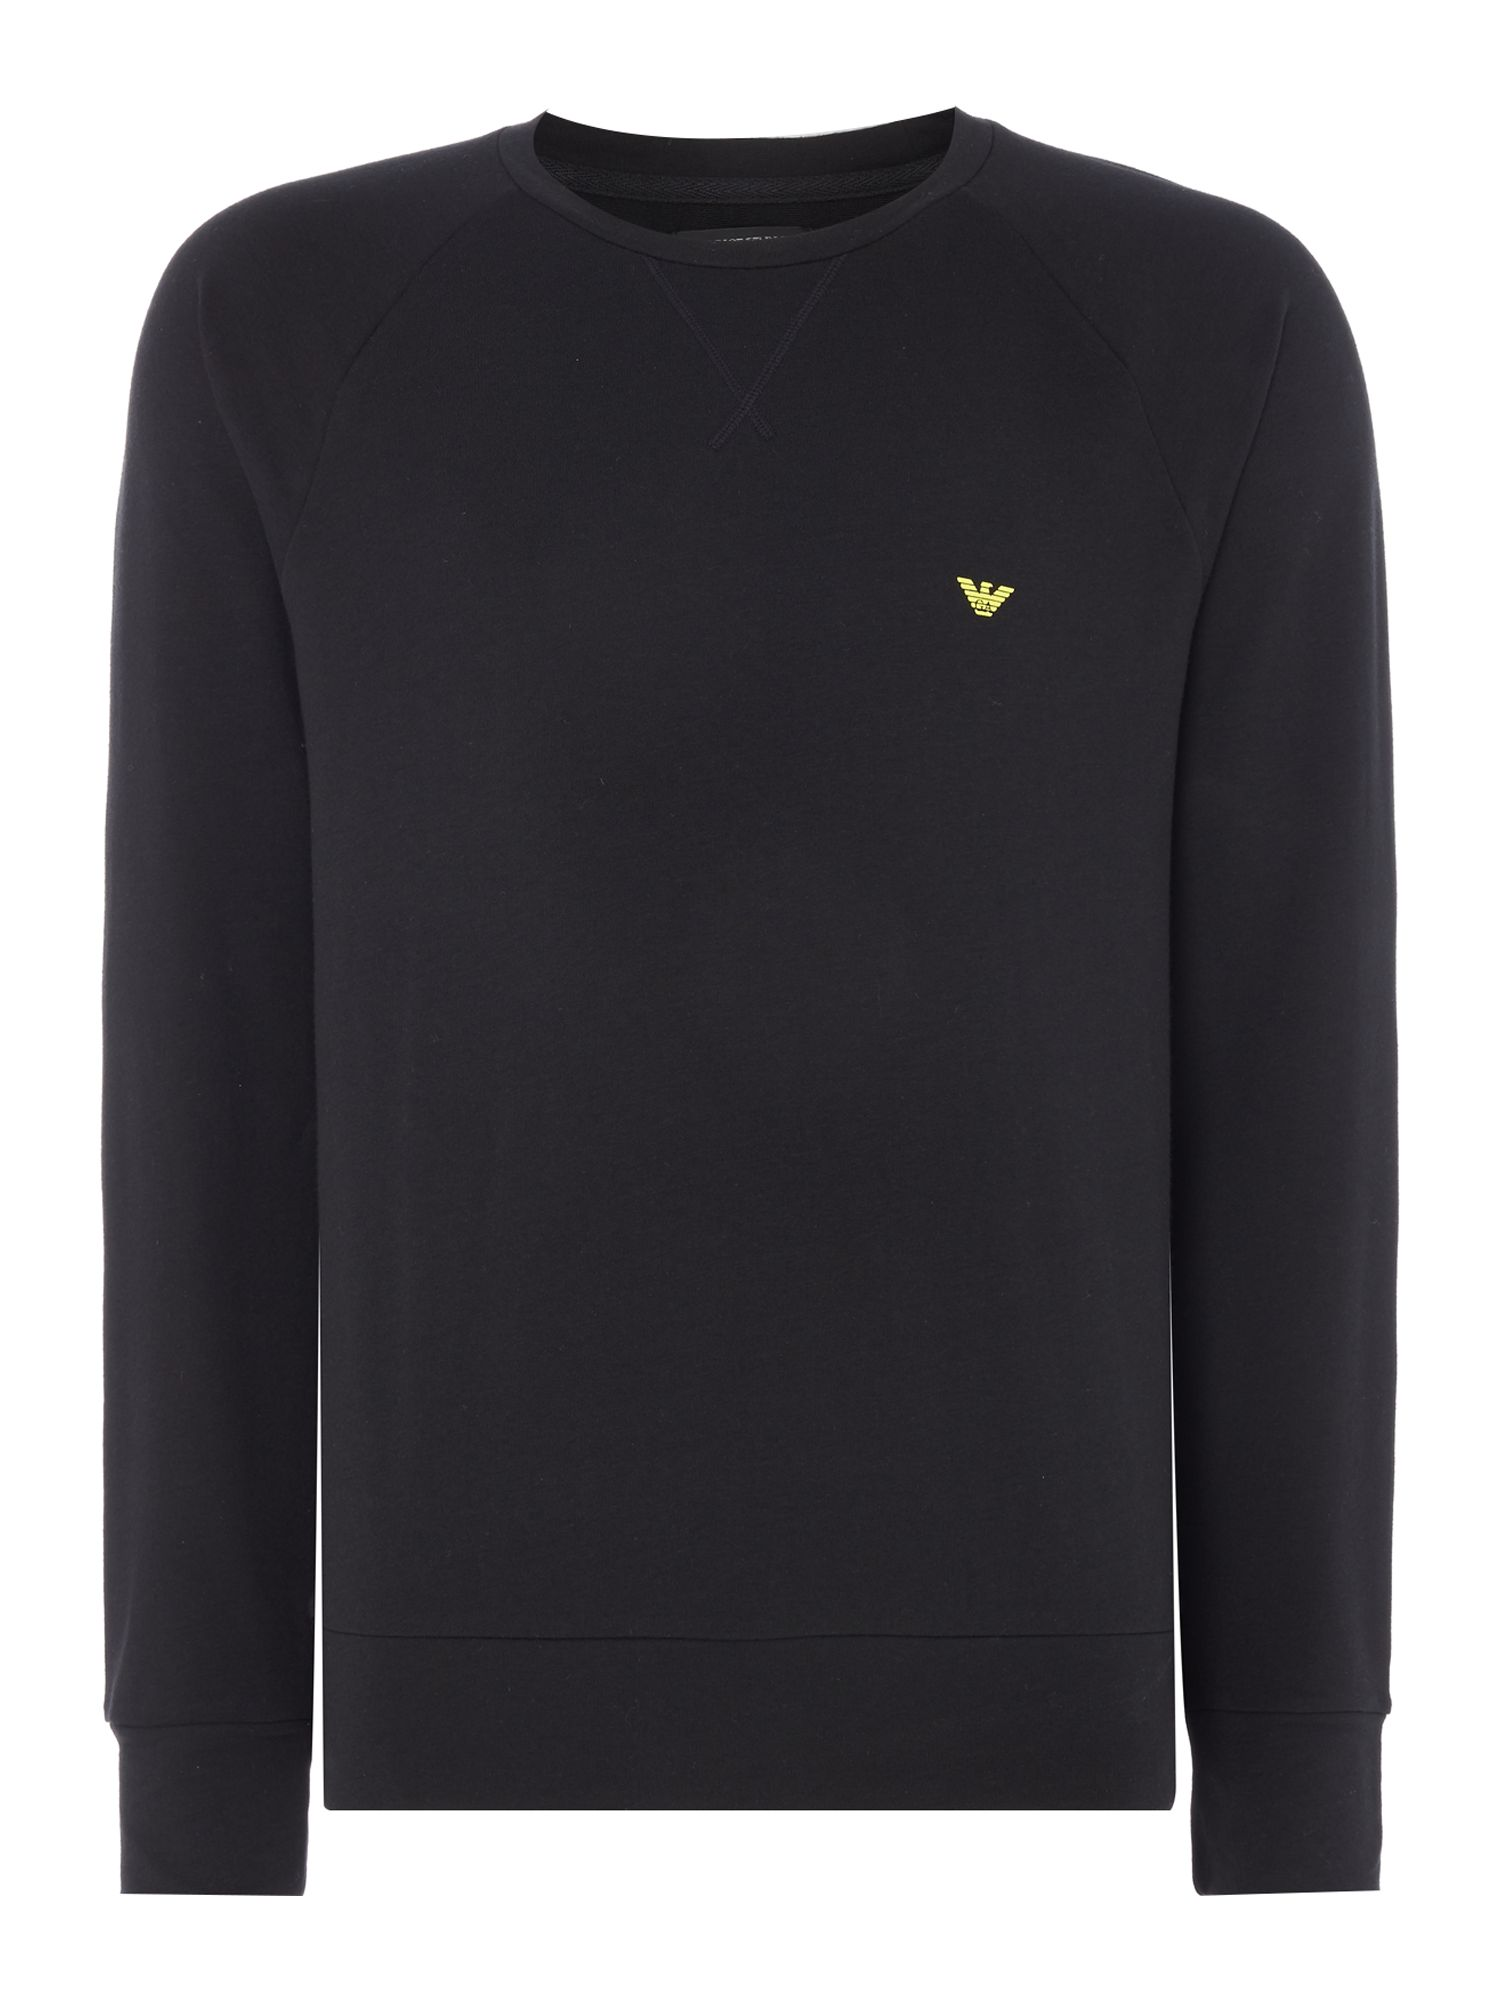 Men's Emporio Armani Large Eagle Sweatshirt, Black